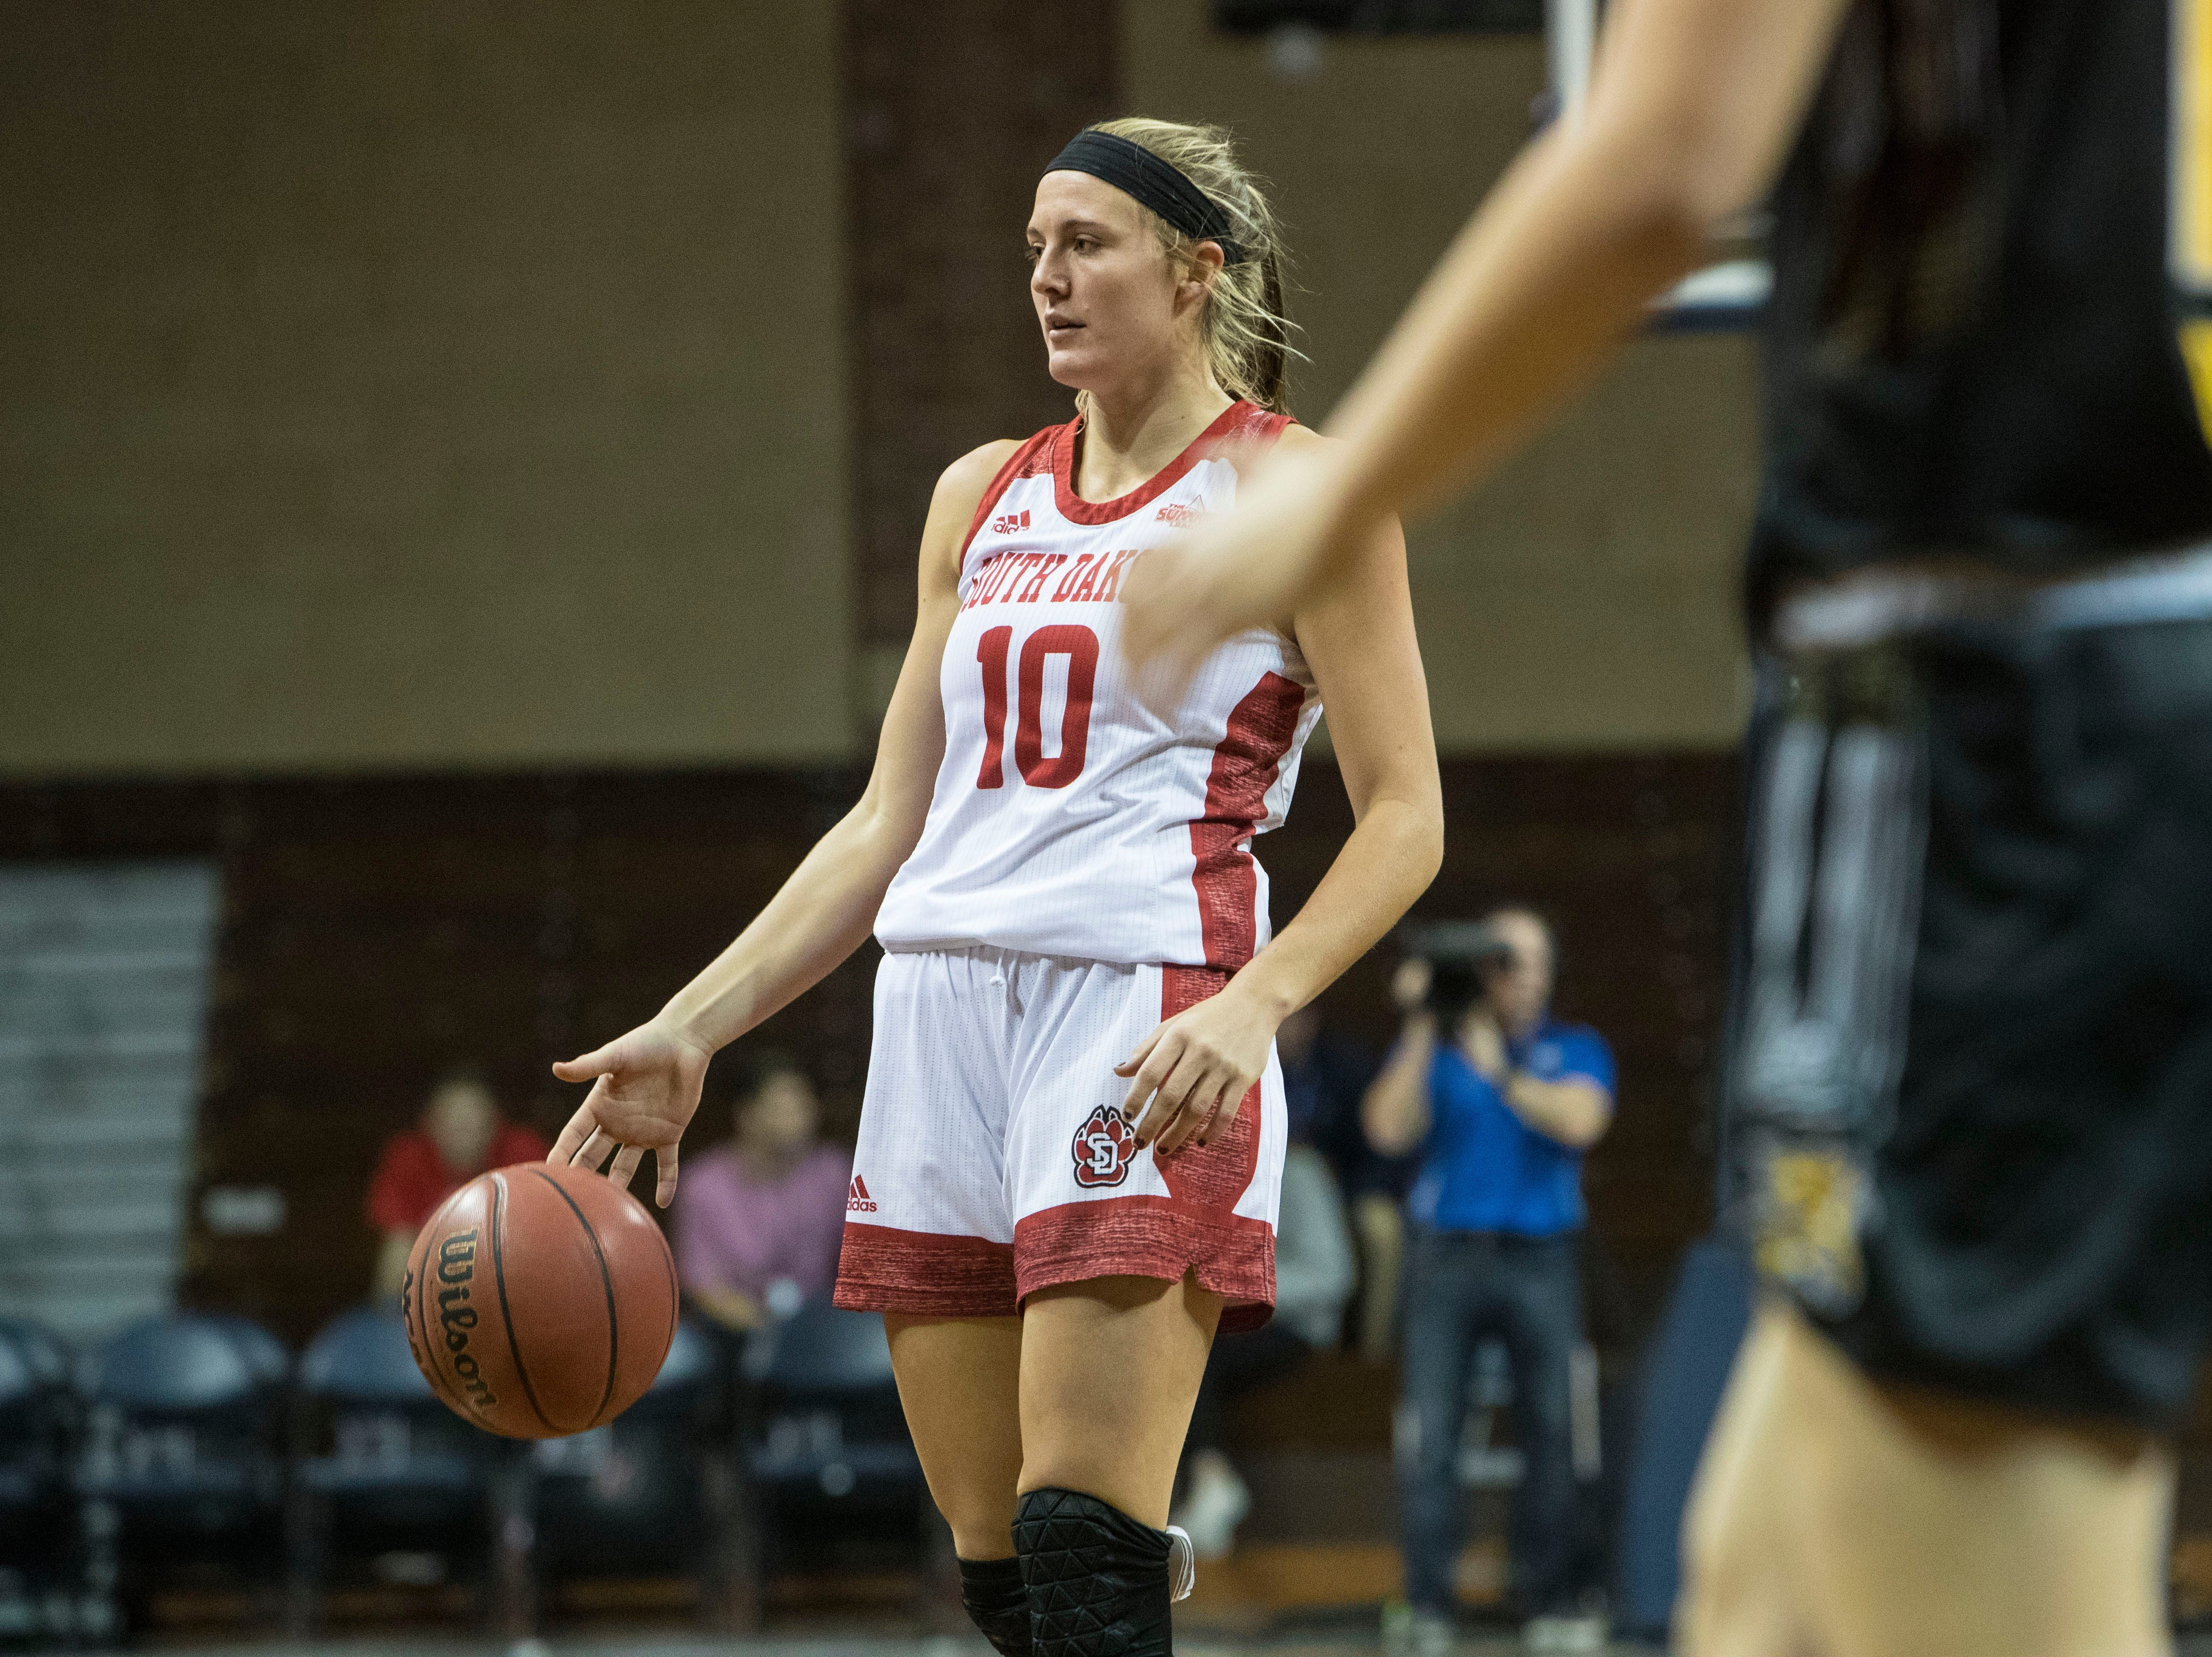 USD's Allison Arens (10) looks to pass the ball during a game against Wichita State at the Sanford Pentagon in Sioux Falls, S.D., Wednesday, Nov. 21, 2018.